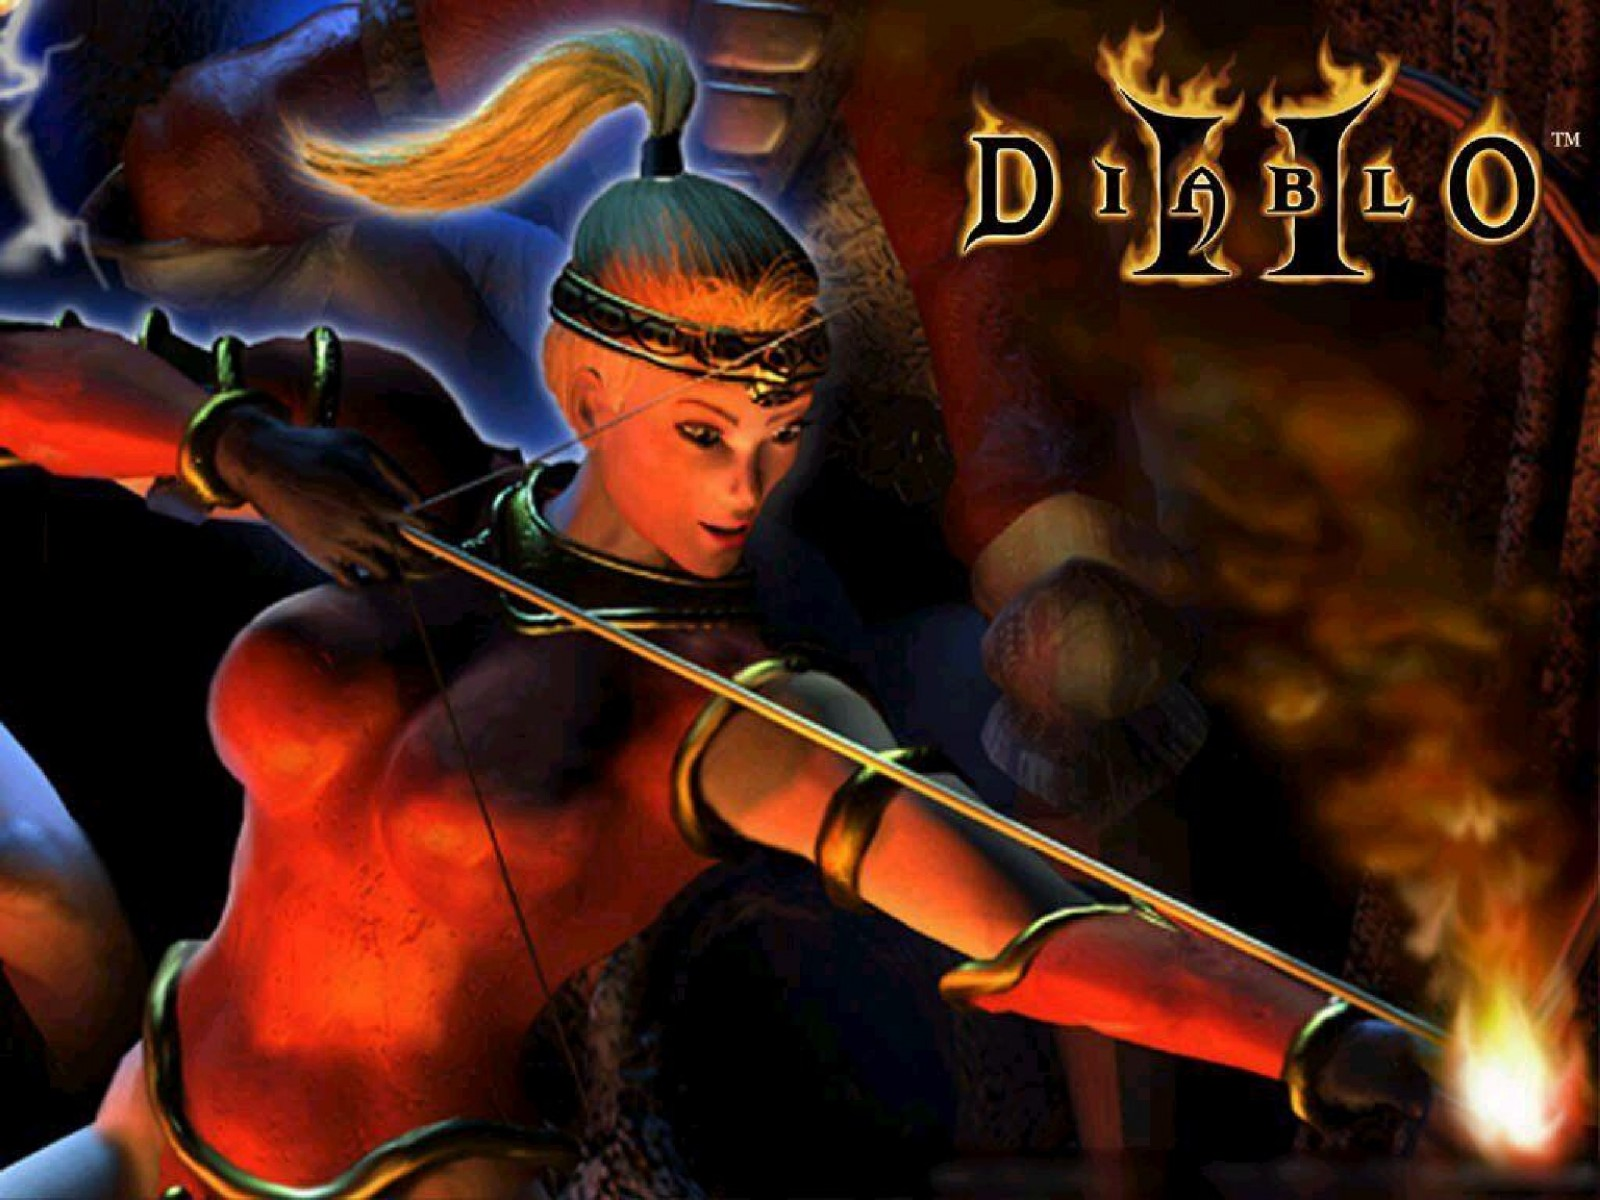 Diablo 2 nude assassin mod erotic picture